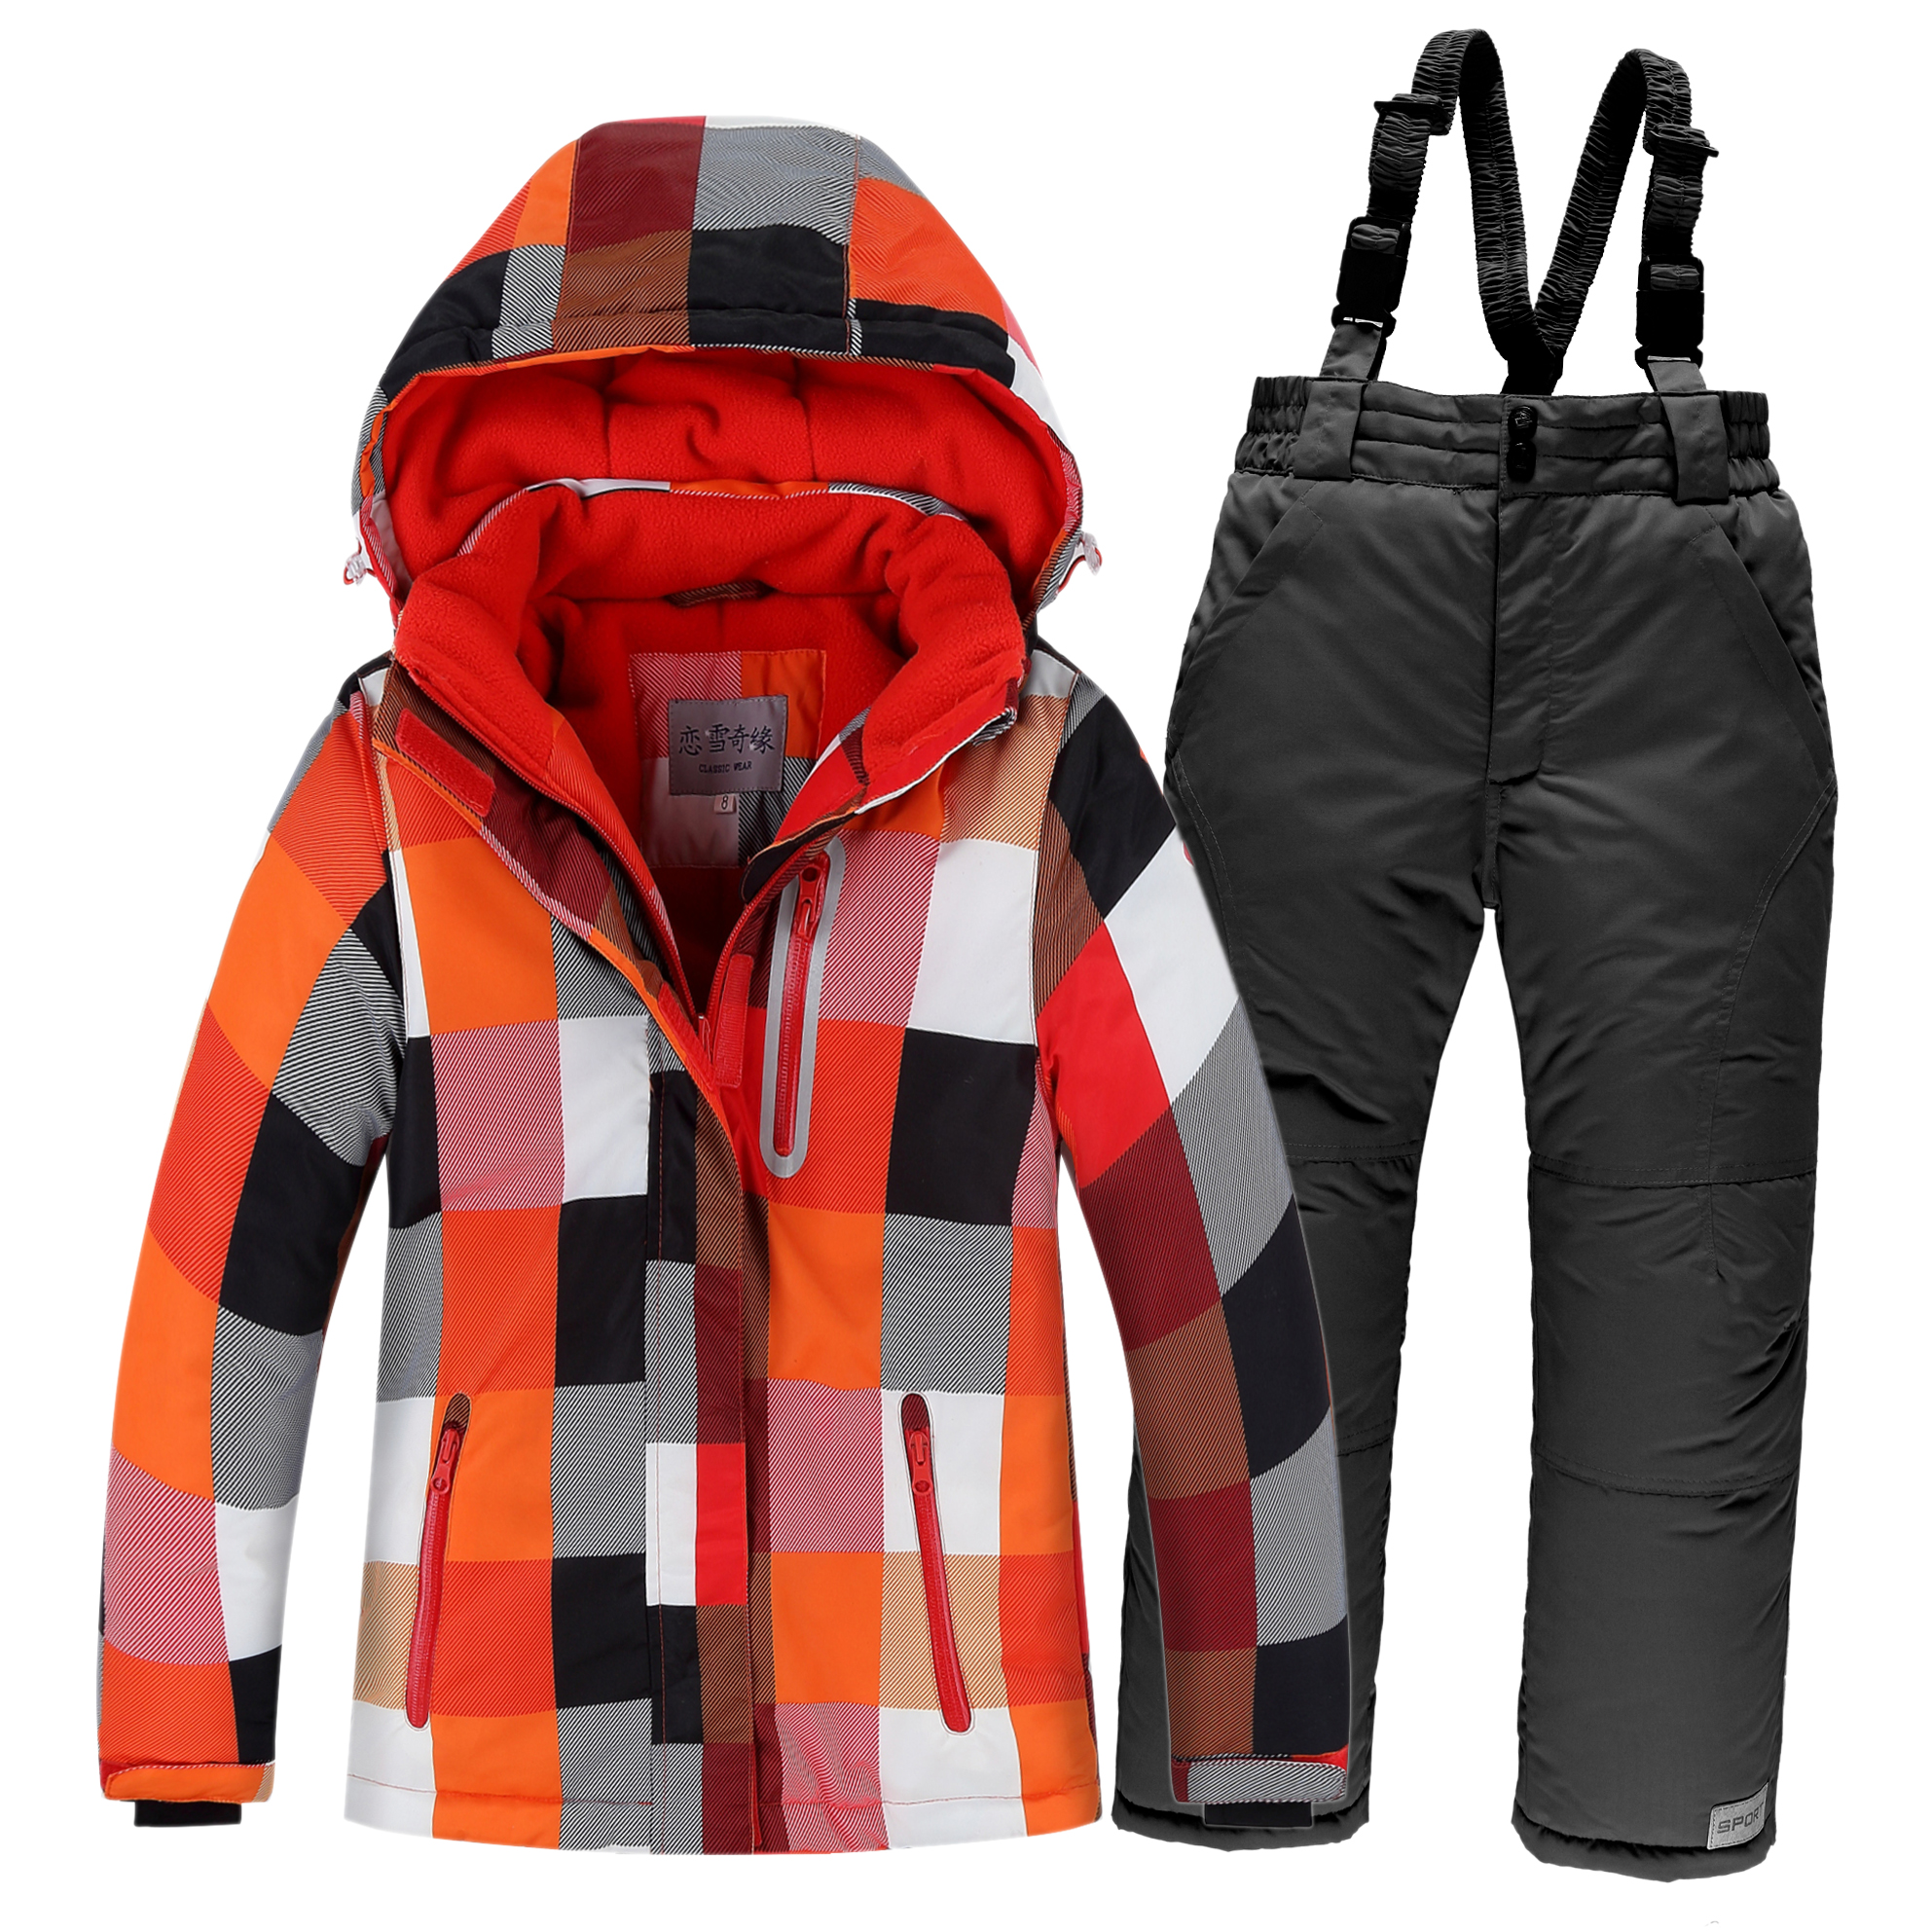 OLEKID Winter Children Ski Suit Windproof Warm Girls Clothing Set Jacket + Overalls Boys Clothes Set 3-16 Years Kids Snow Suits kids ski suits snow suits for girls children boys snowsuit down cotton jacket winter overalls child winter thicken clothing